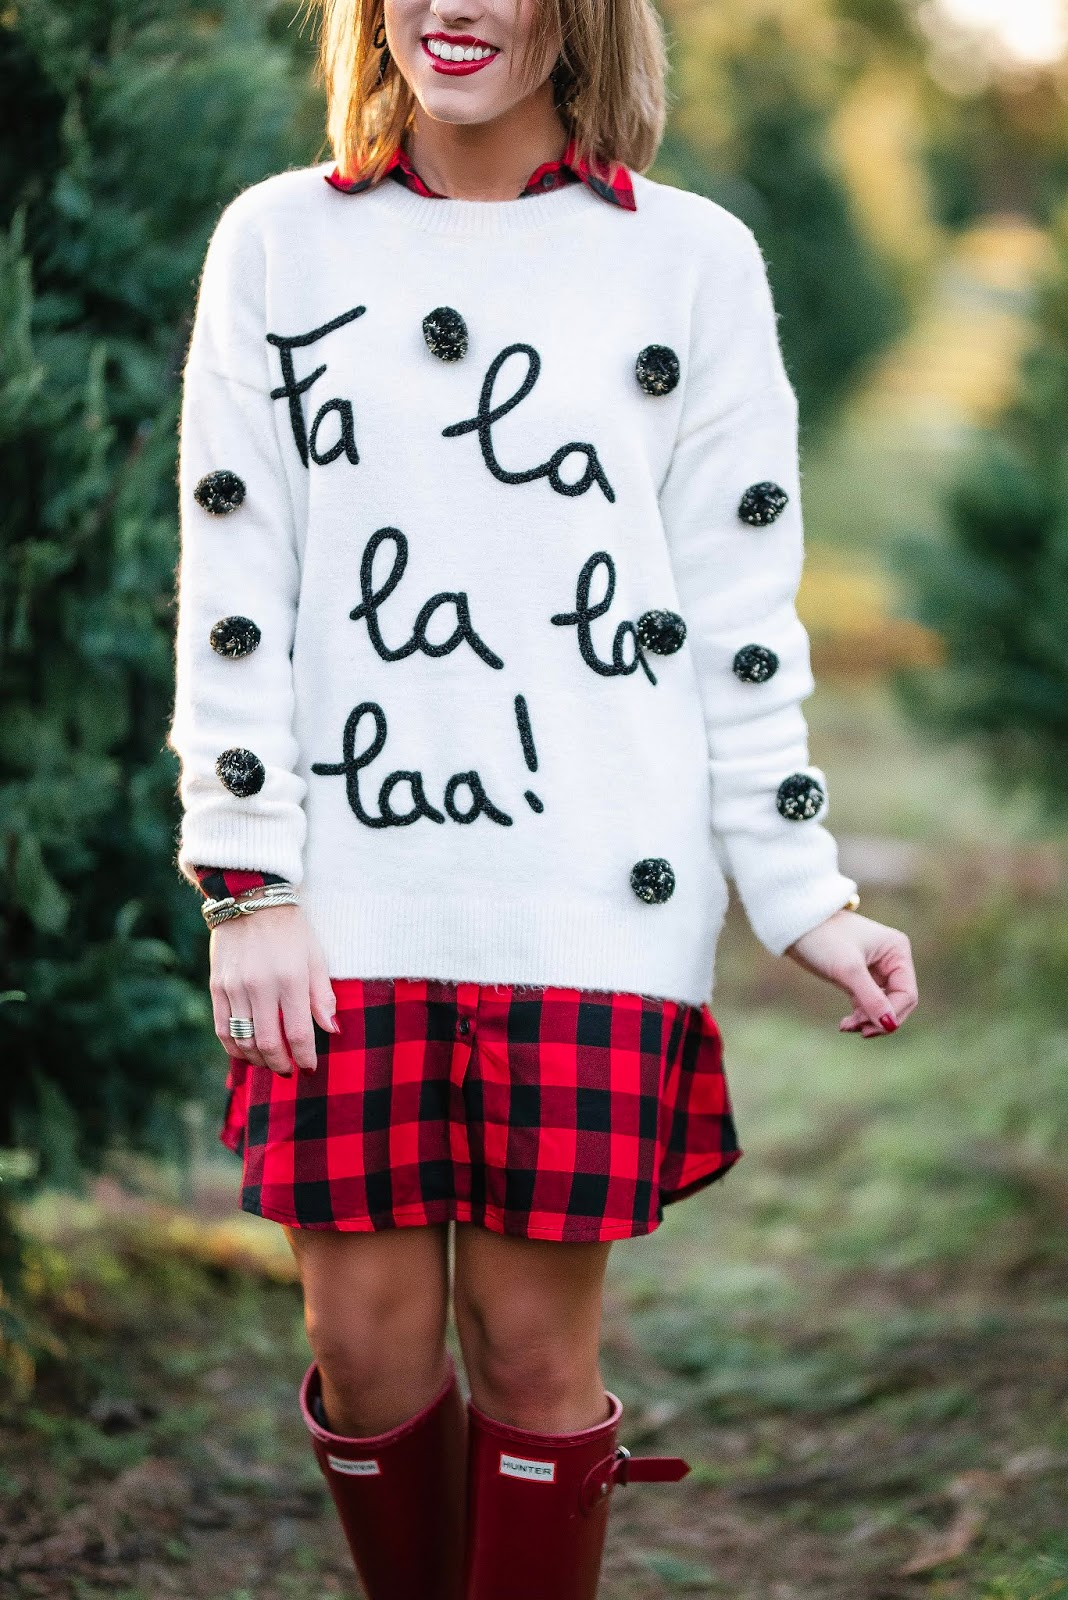 Buffalo Plaid Dress, Fa La La La Sweater & Hunter Boots + Gift Guide for the Pet Lovers - Something Delightful Blog